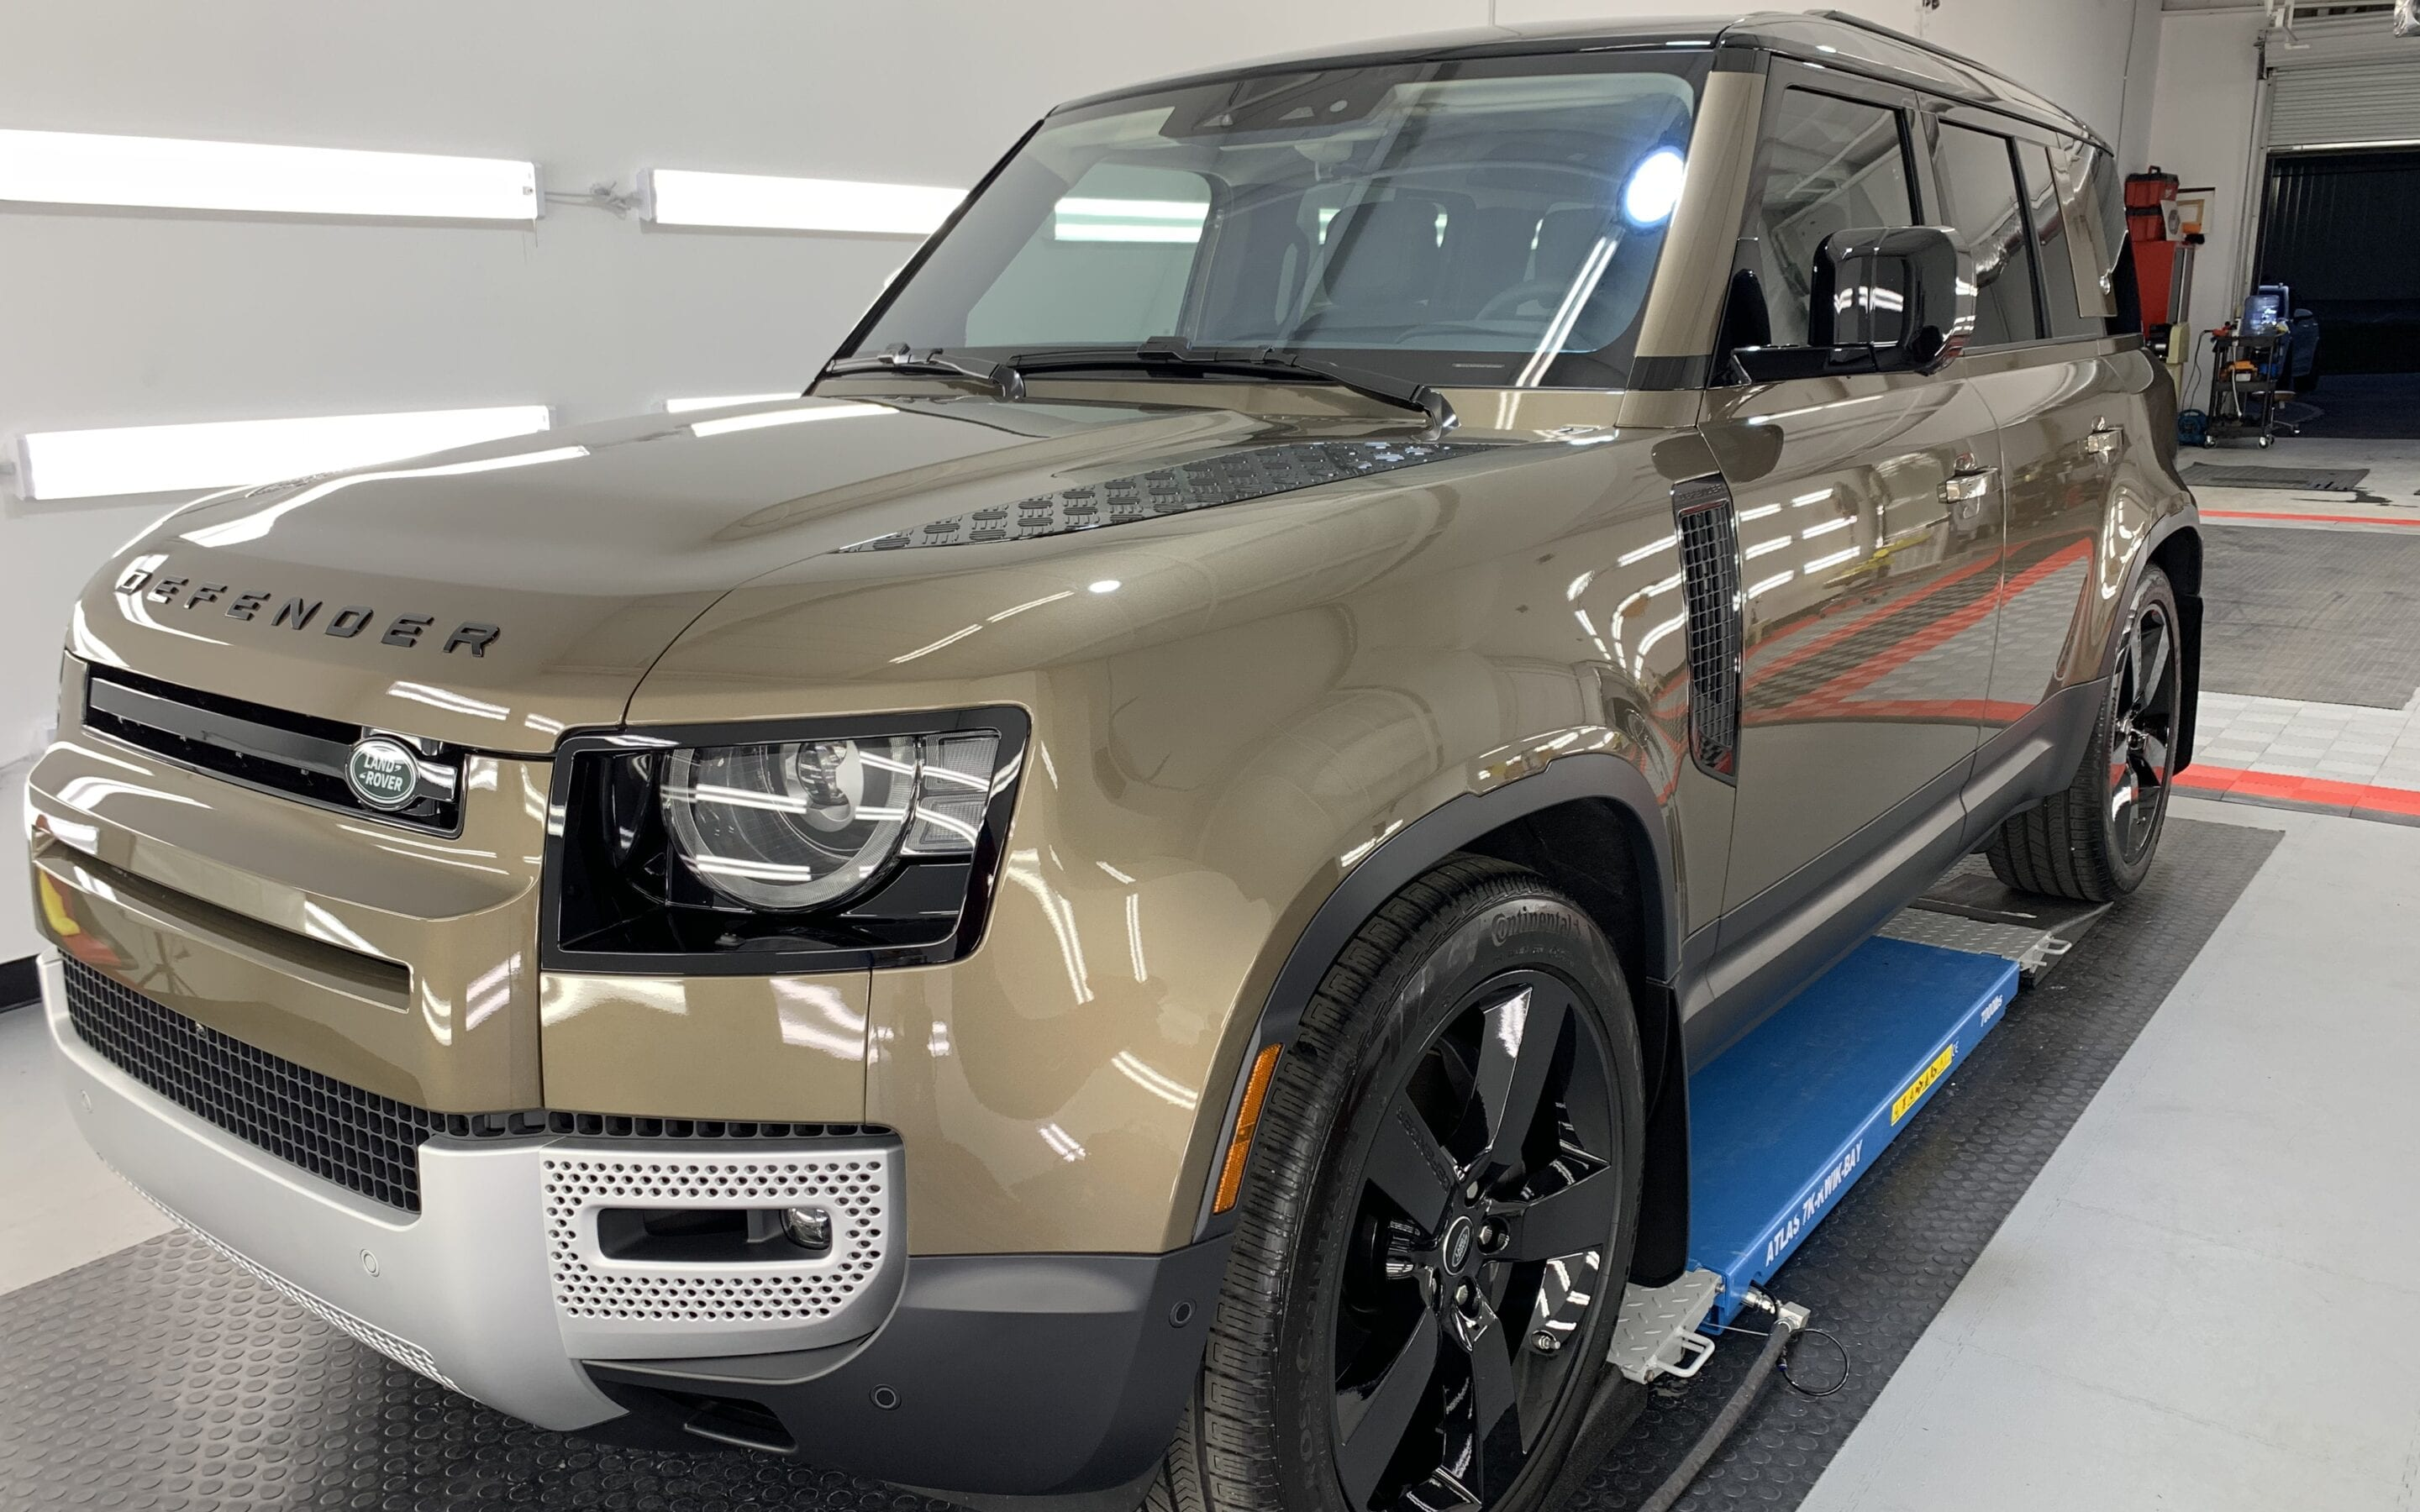 New Car Preparation of a 2020 Land Rover Defender